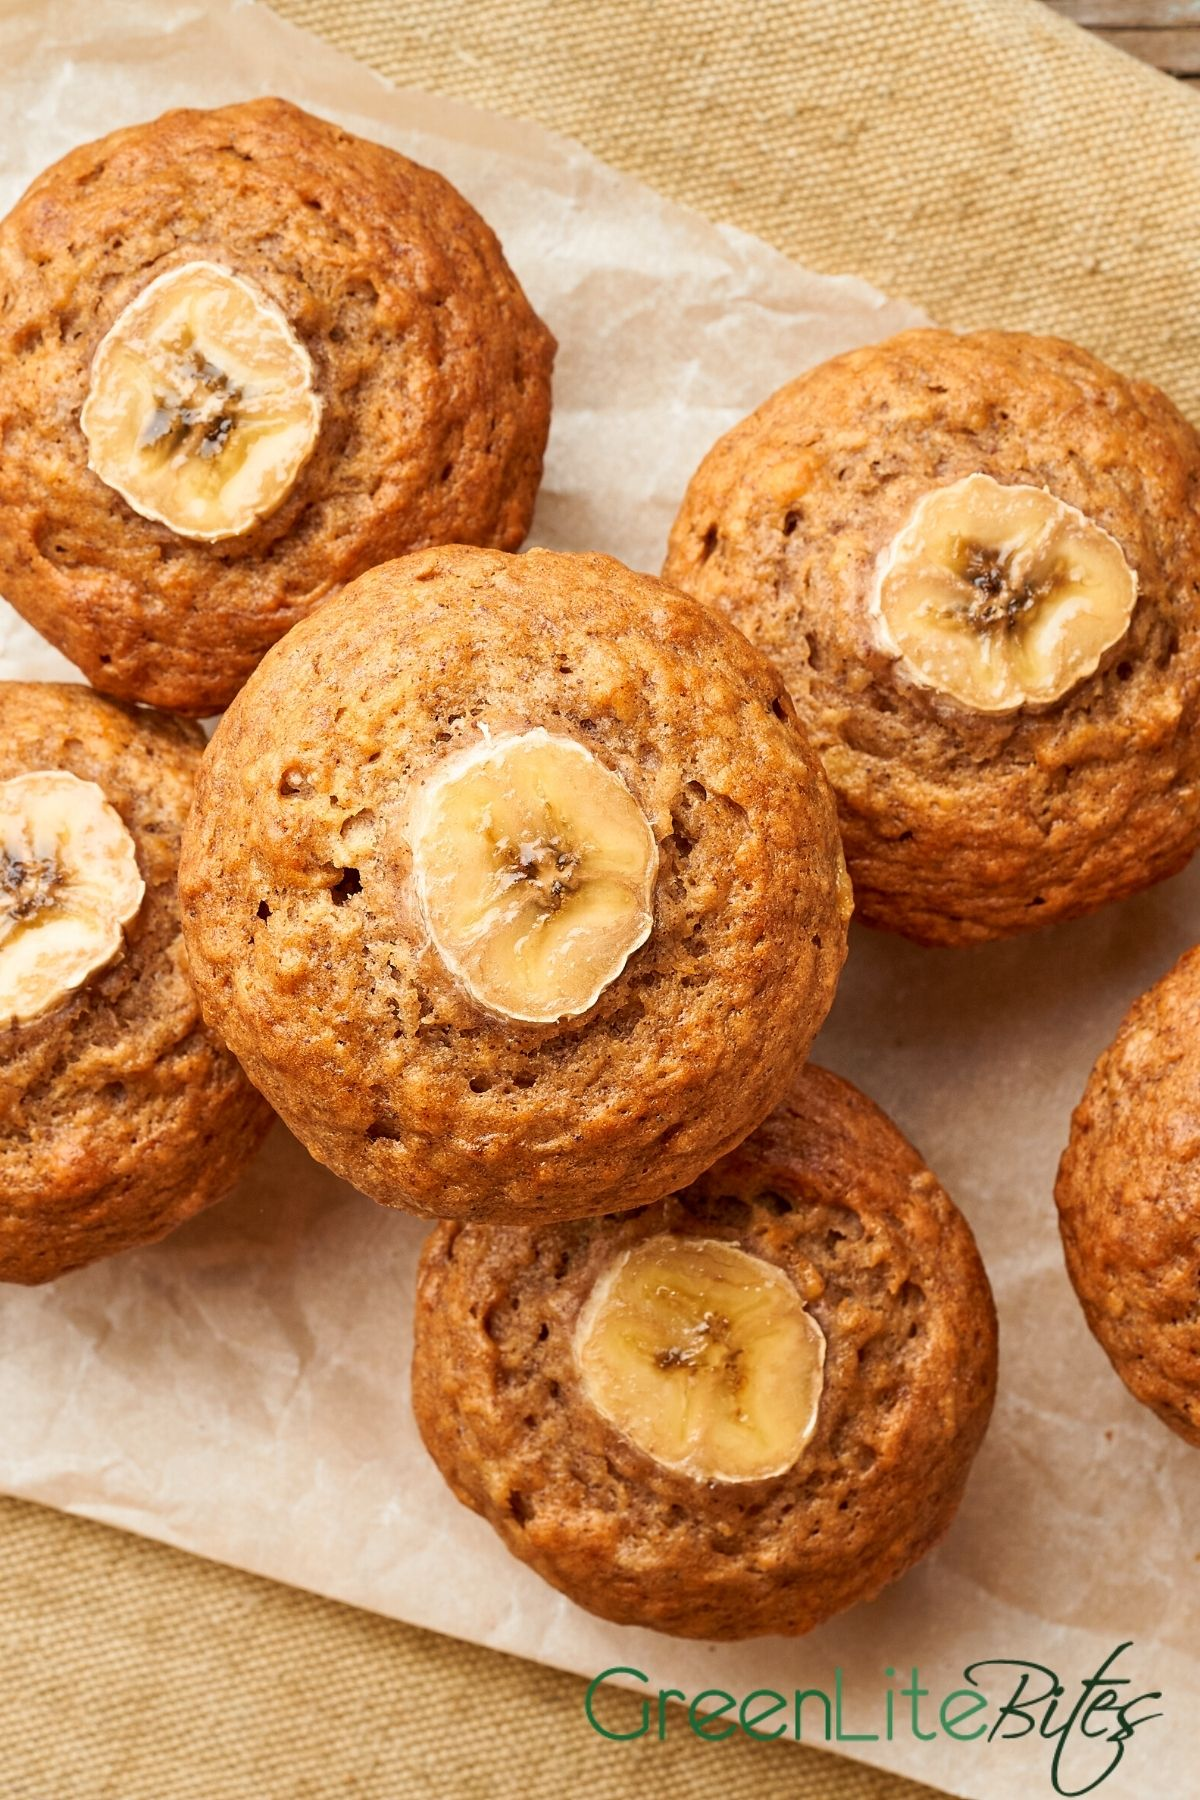 Muffin with banana slice on top